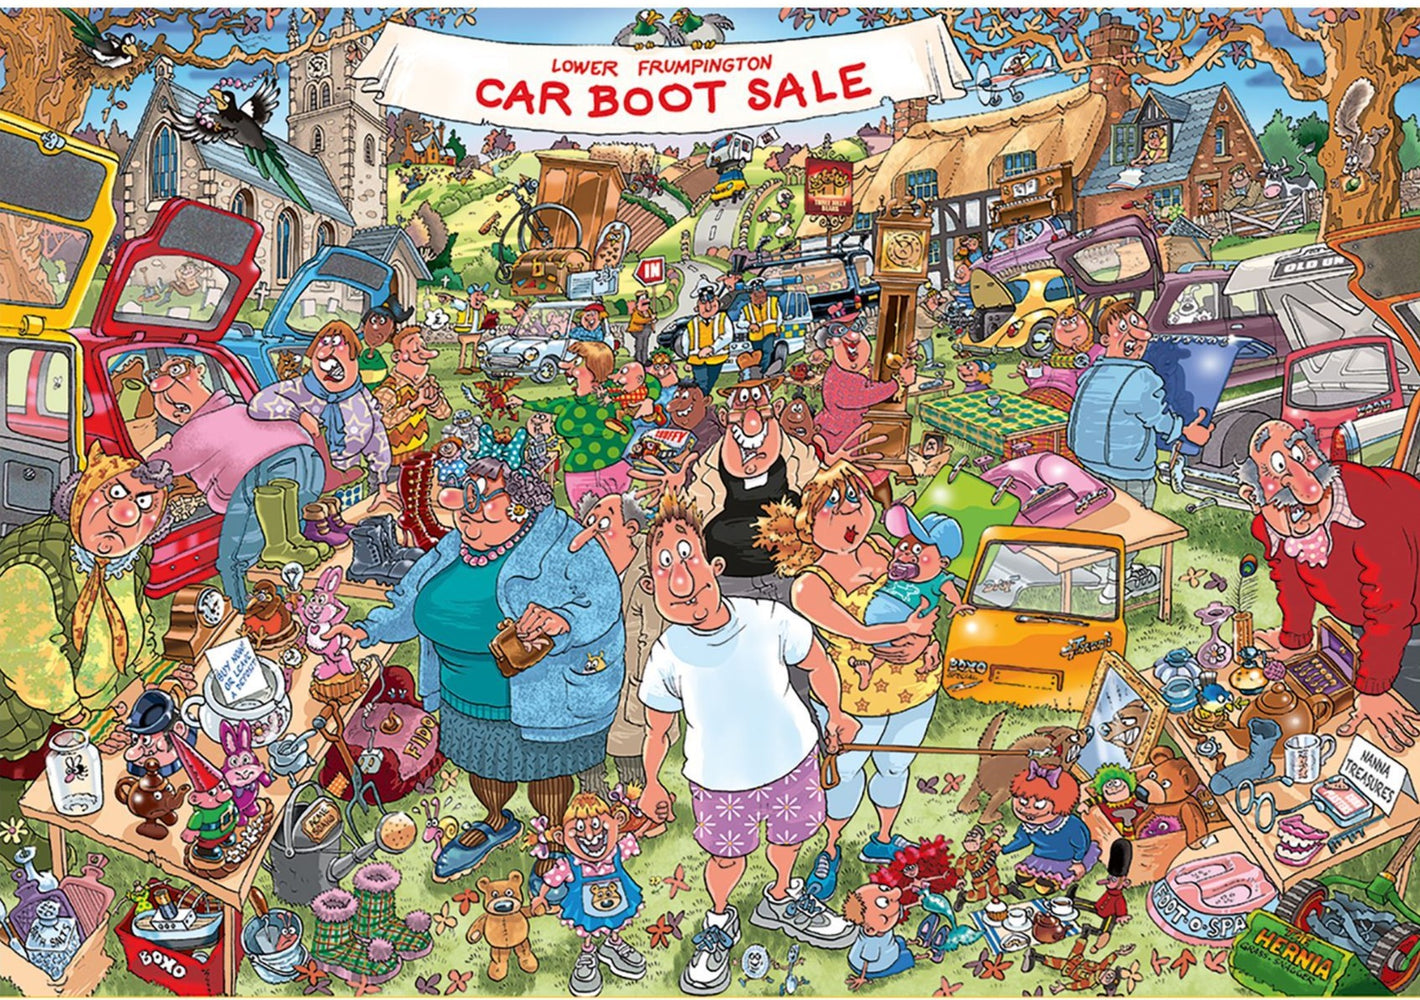 Wasgij Original 35 Car Boot Capers 1000 Piece Jigsaw Puzzle